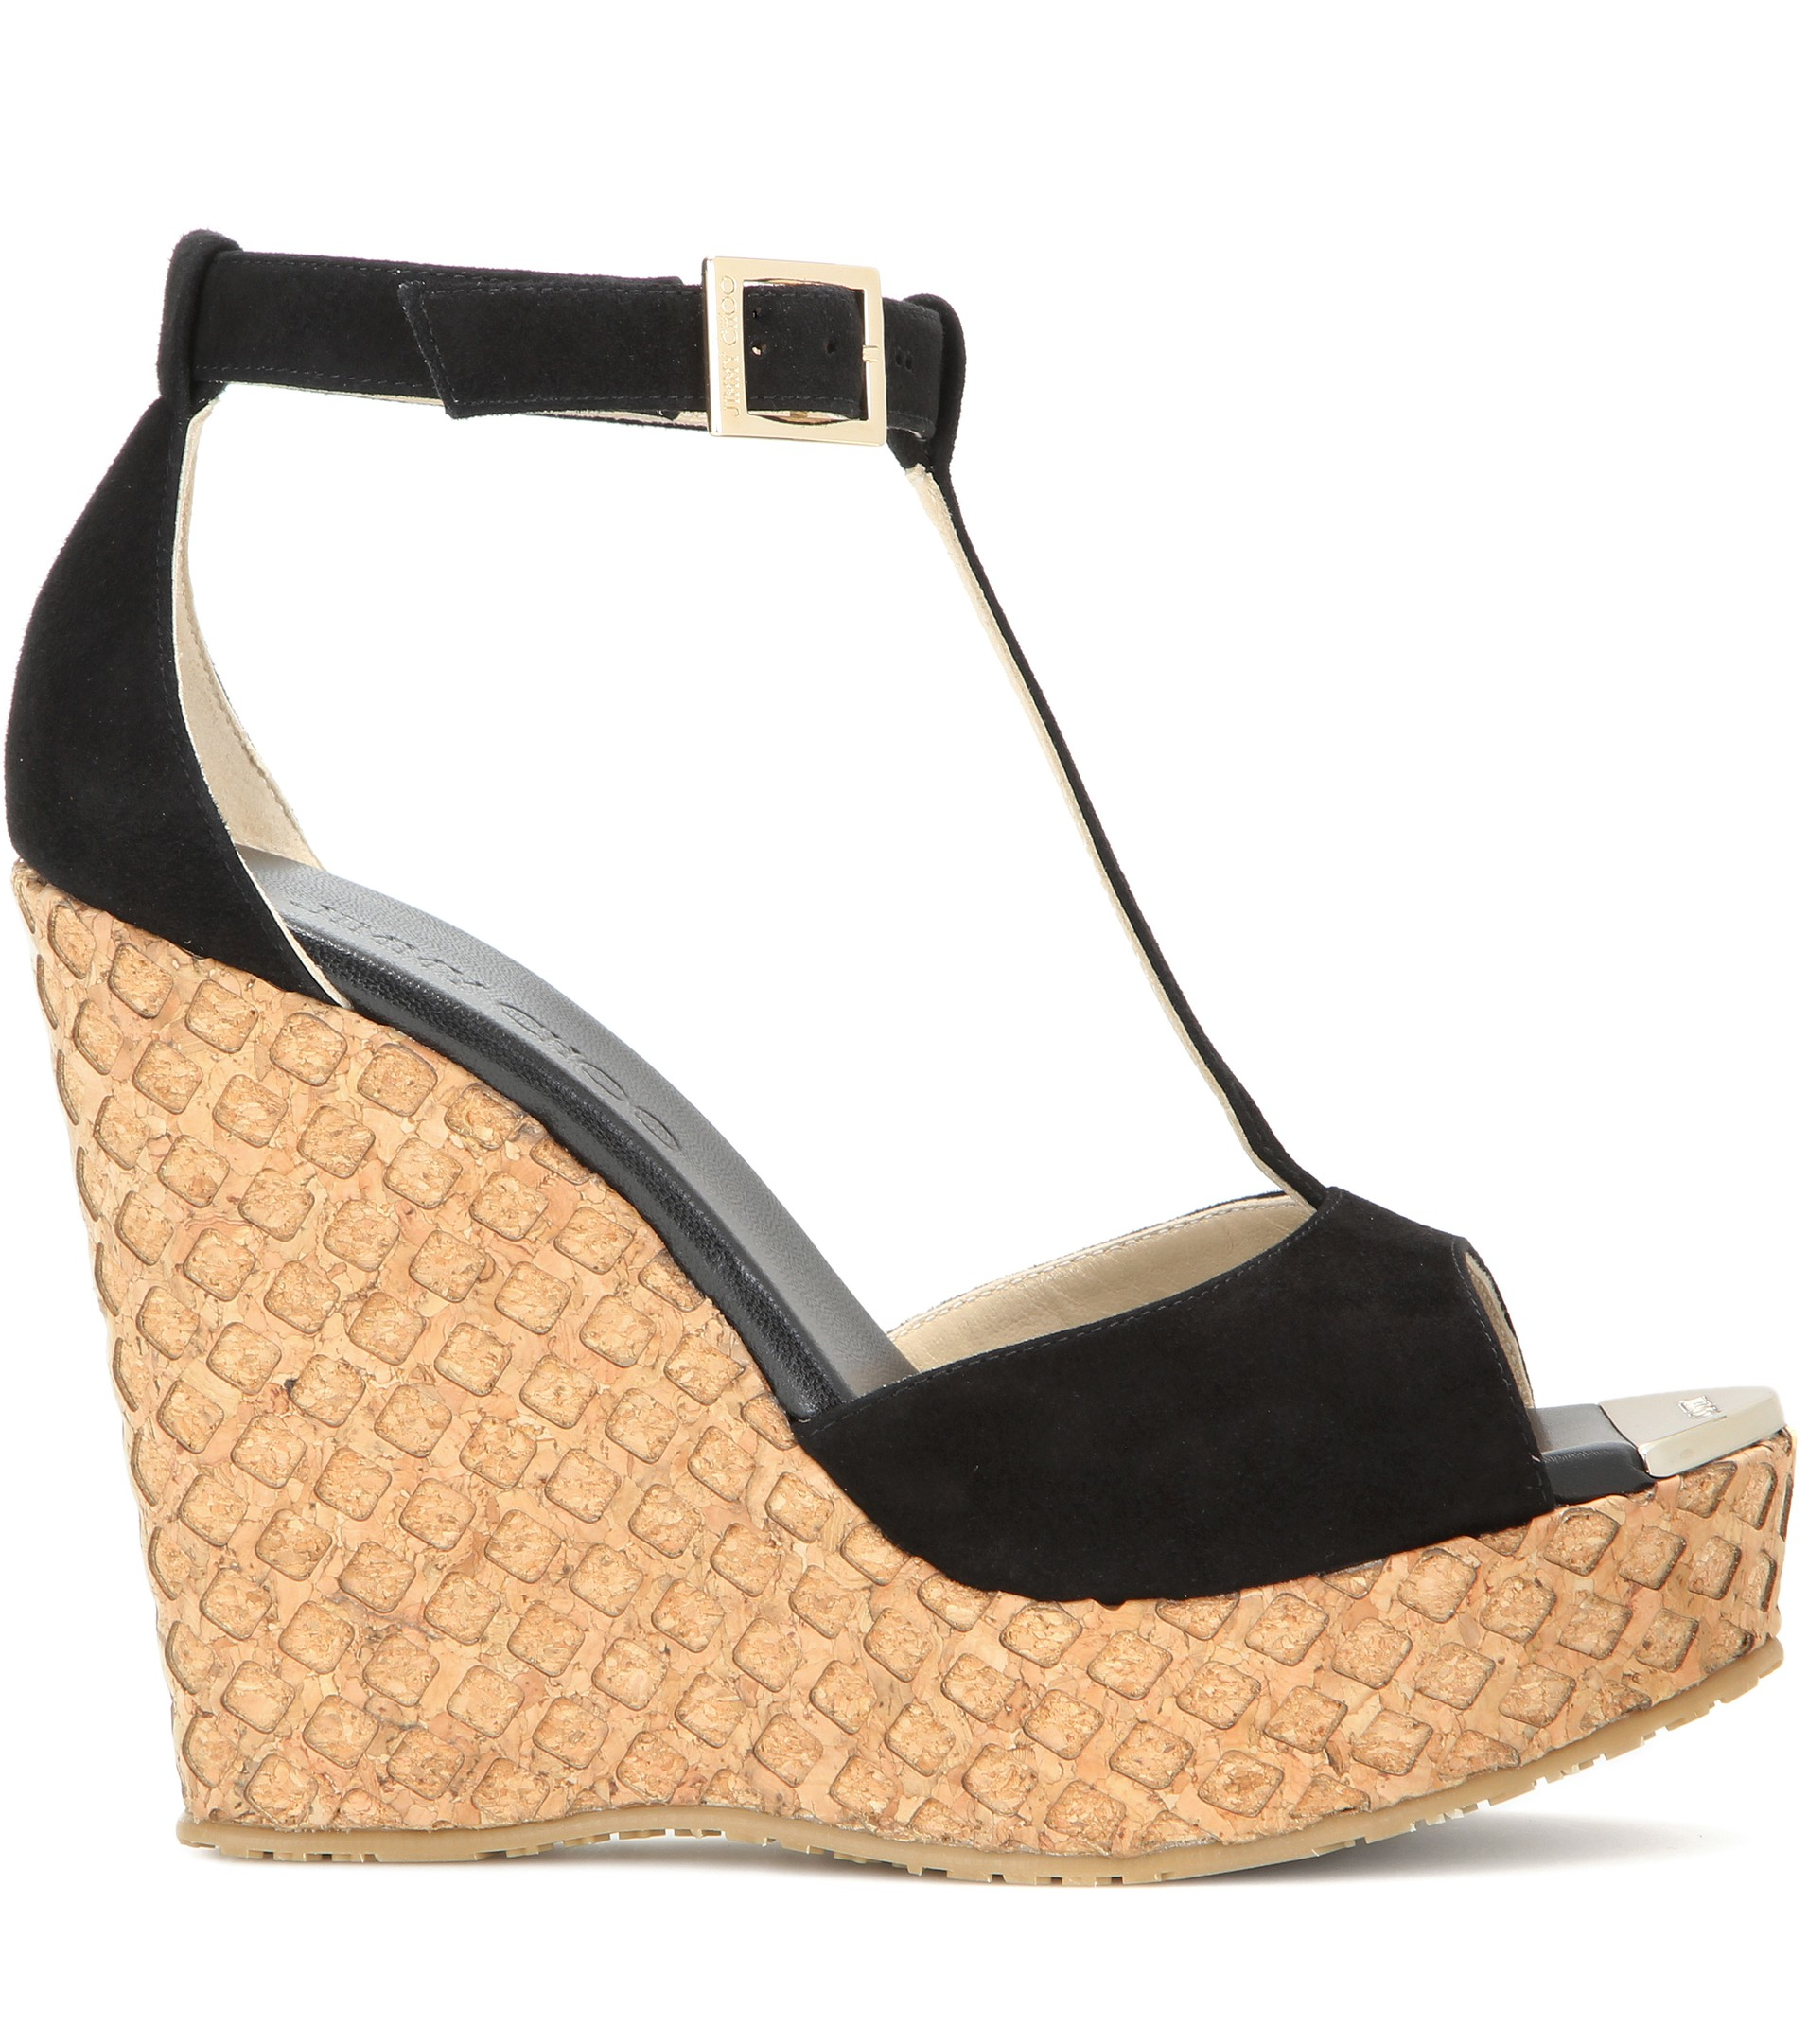 Jimmy Choo Suede Wedge Sandals buy cheap pictures newest outlet enjoy BZRUlKt1